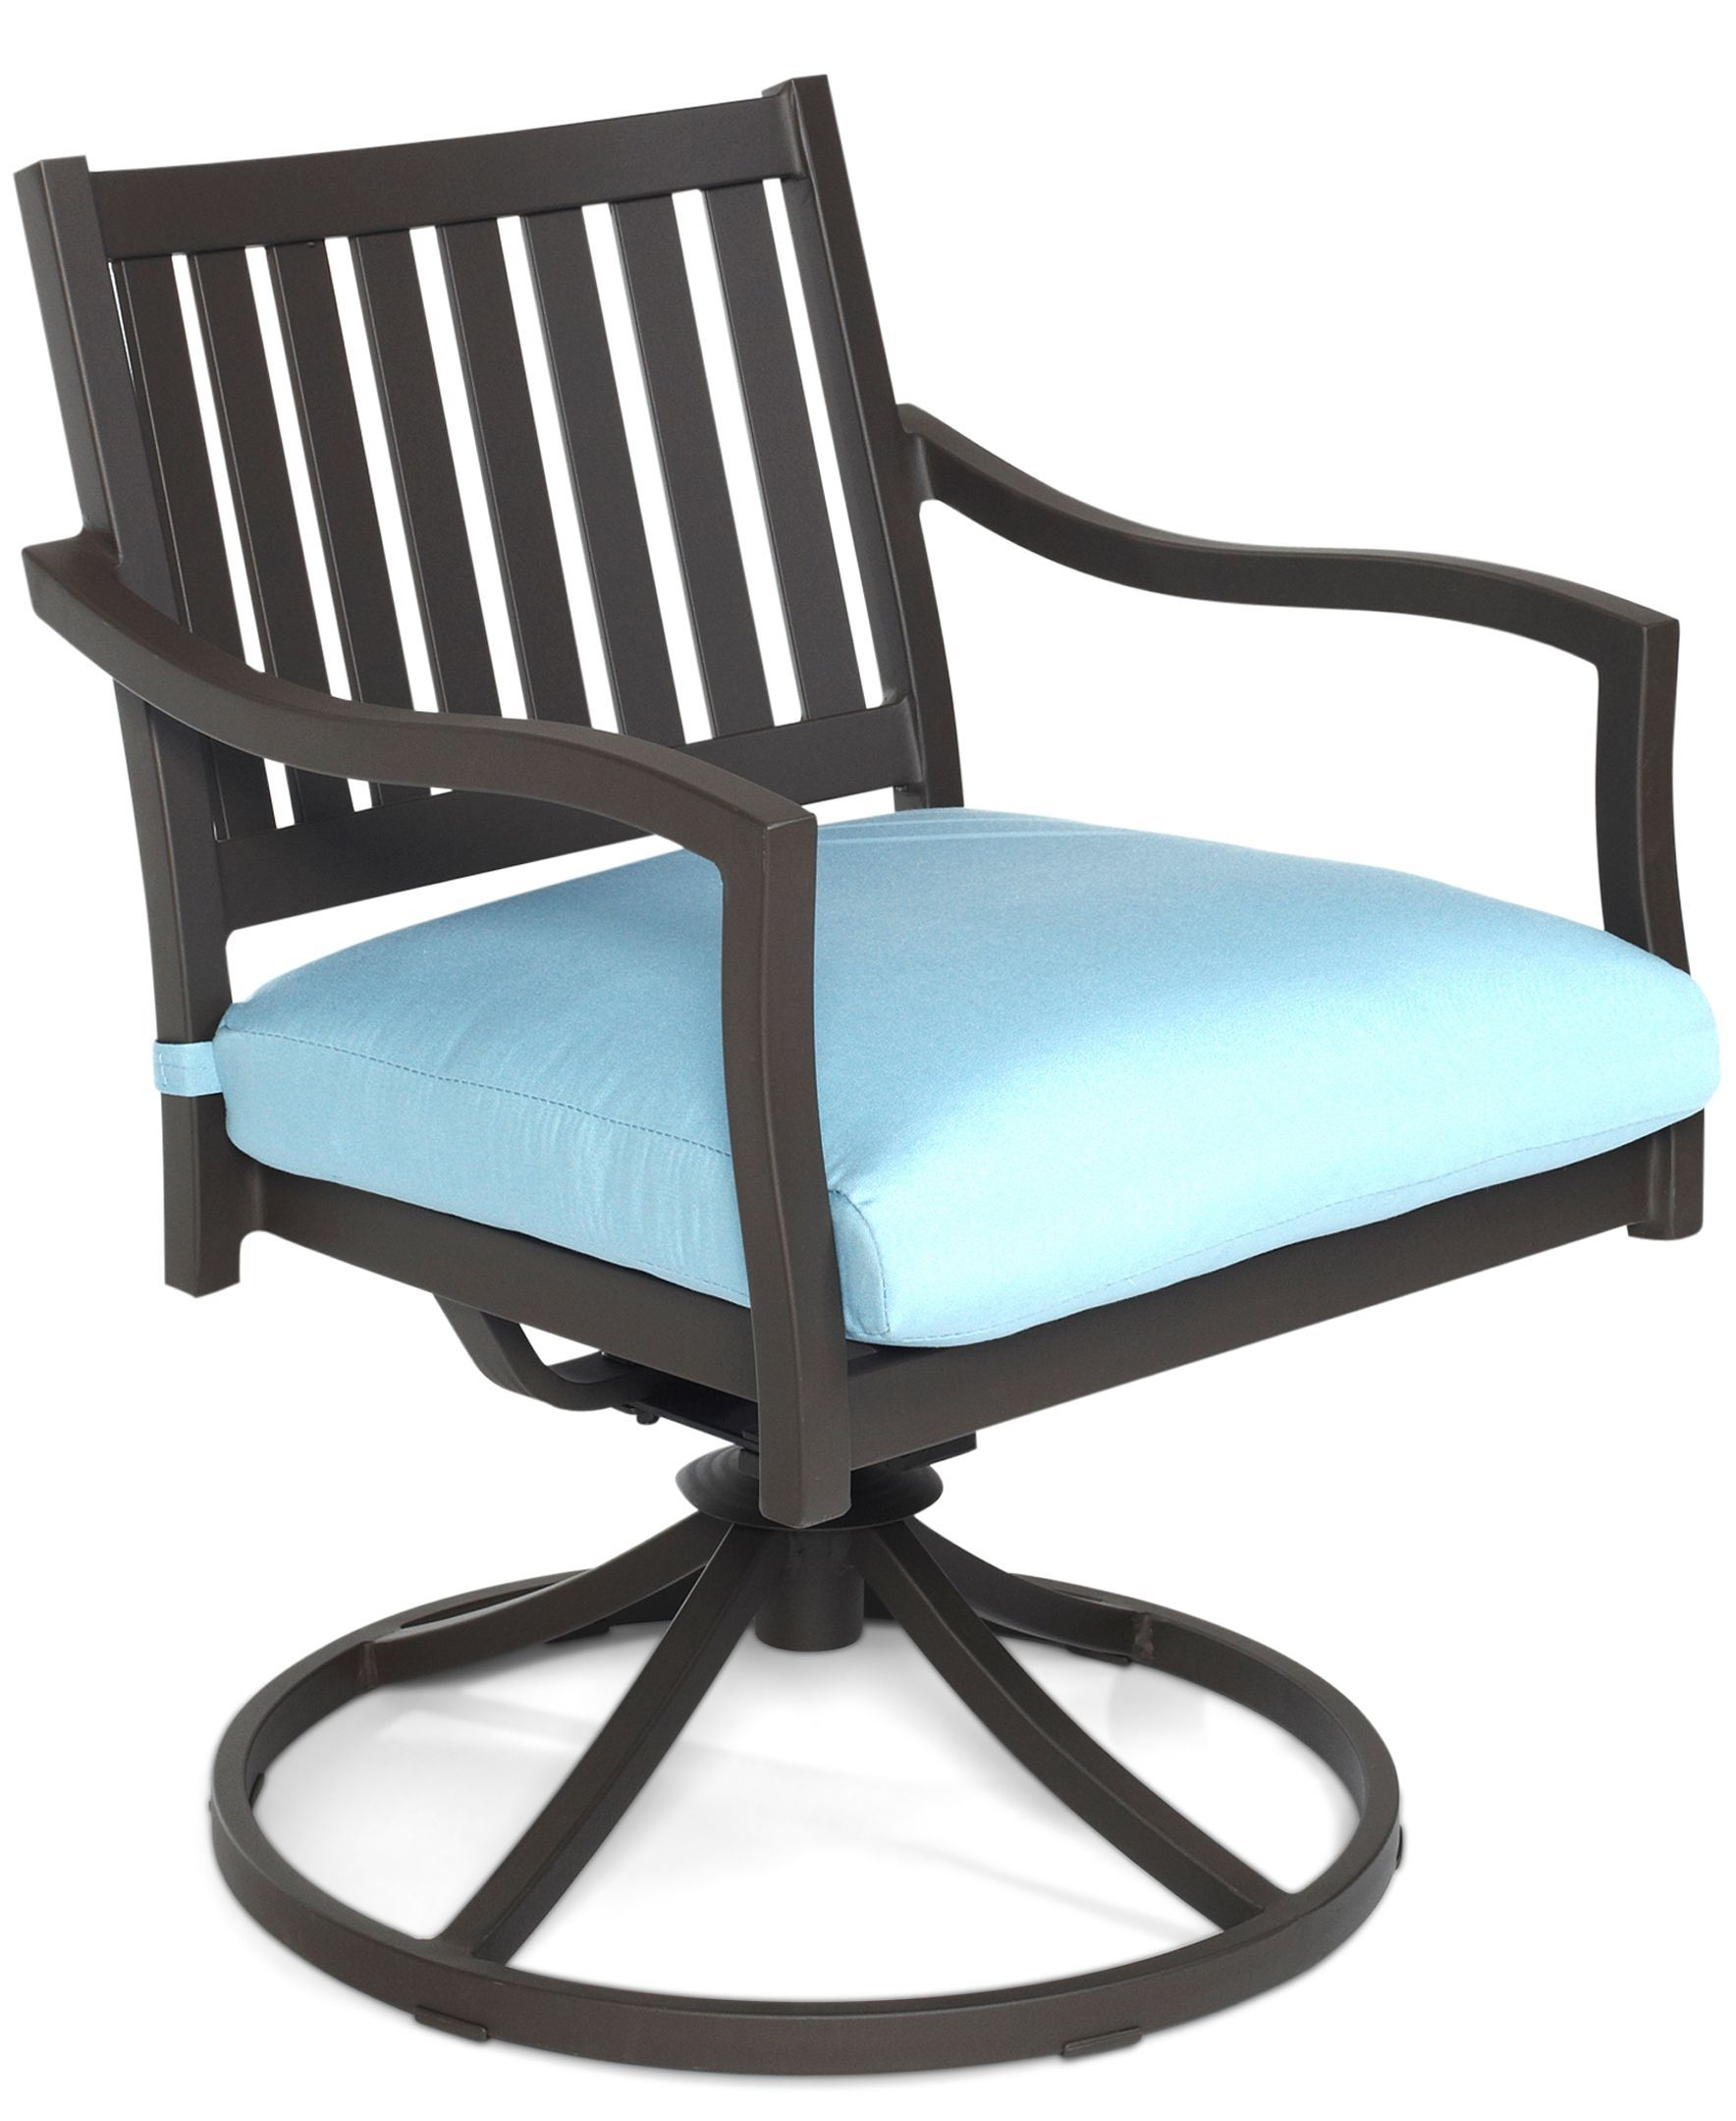 Swivel patio chairs  sc 1 st  Foter & Swivel Patio Chairs - Foter